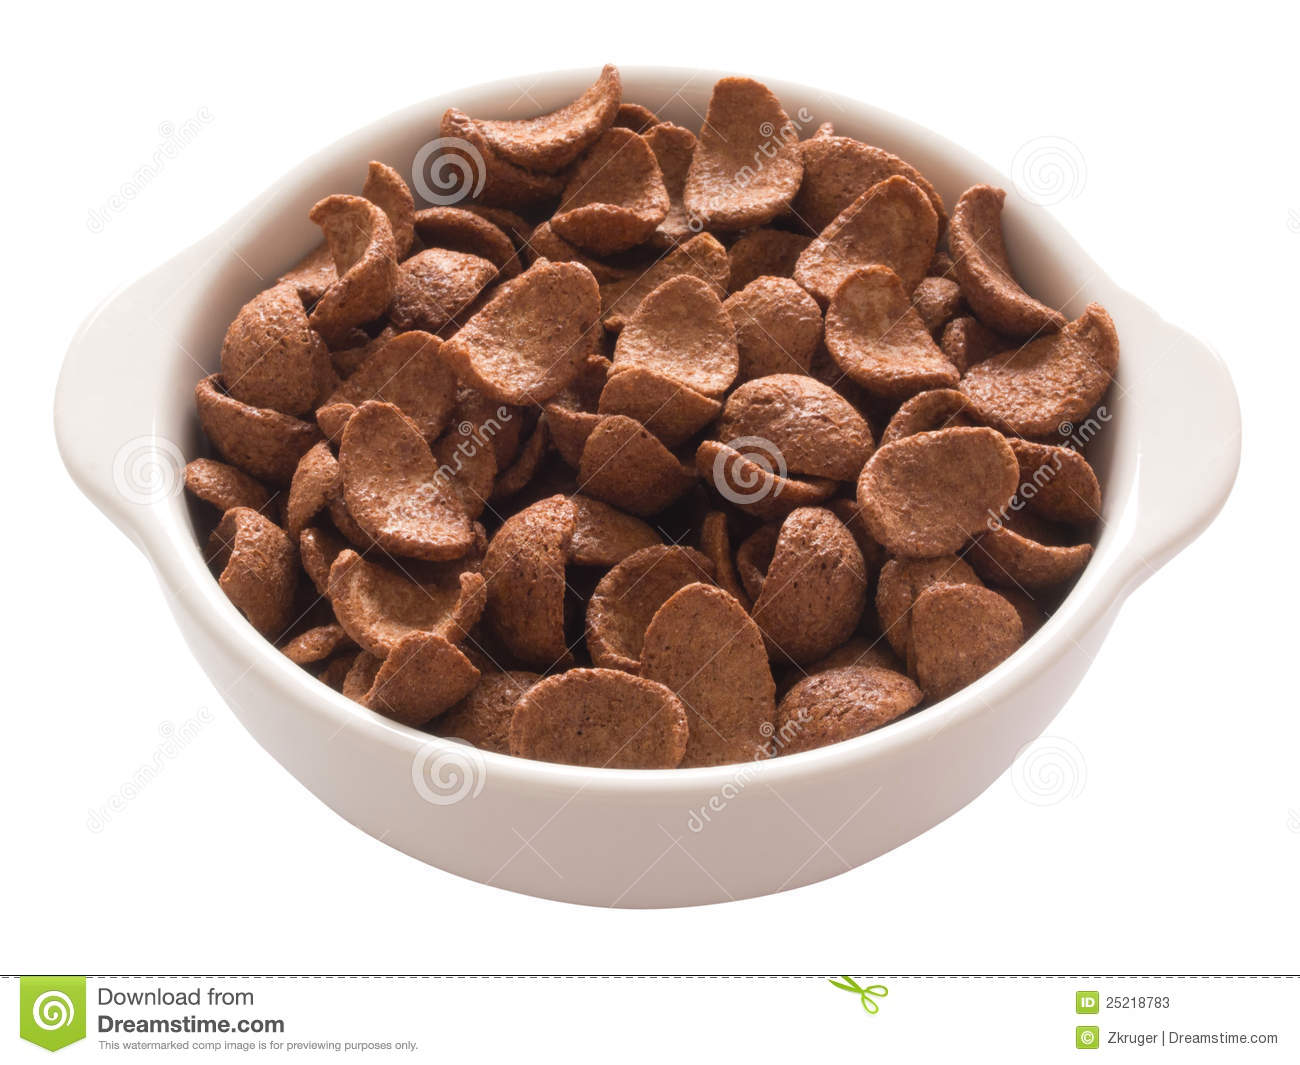 Chocolate Flavored Cereal Stock Photos - Image: 25218773